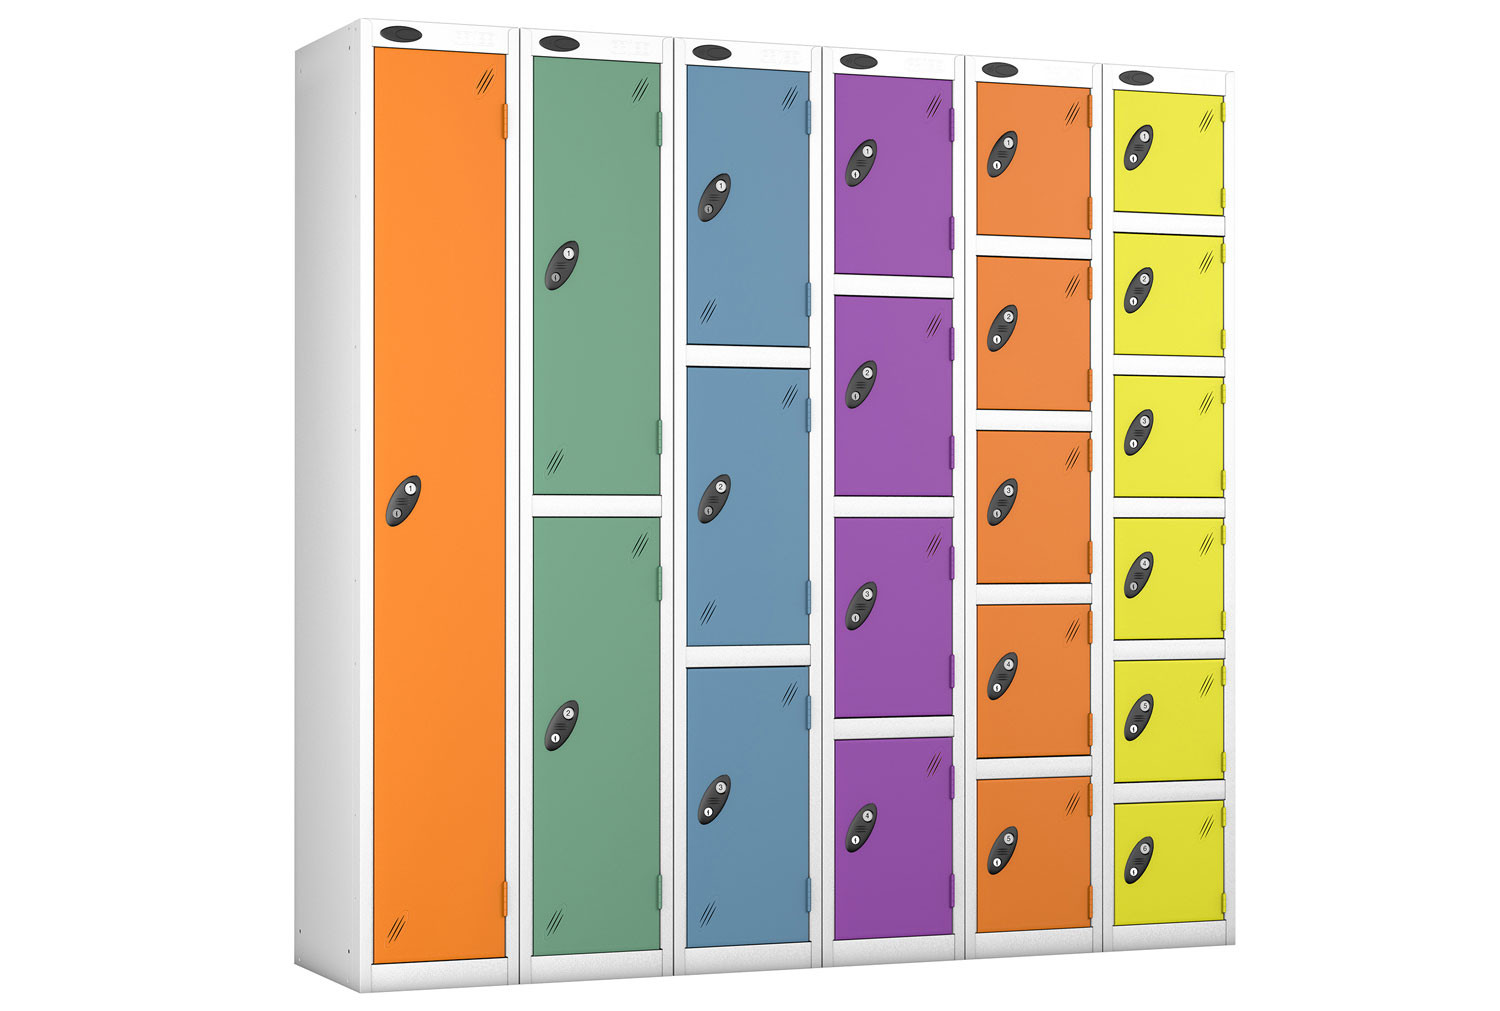 Probe Autumn Colour Lockers With White Body